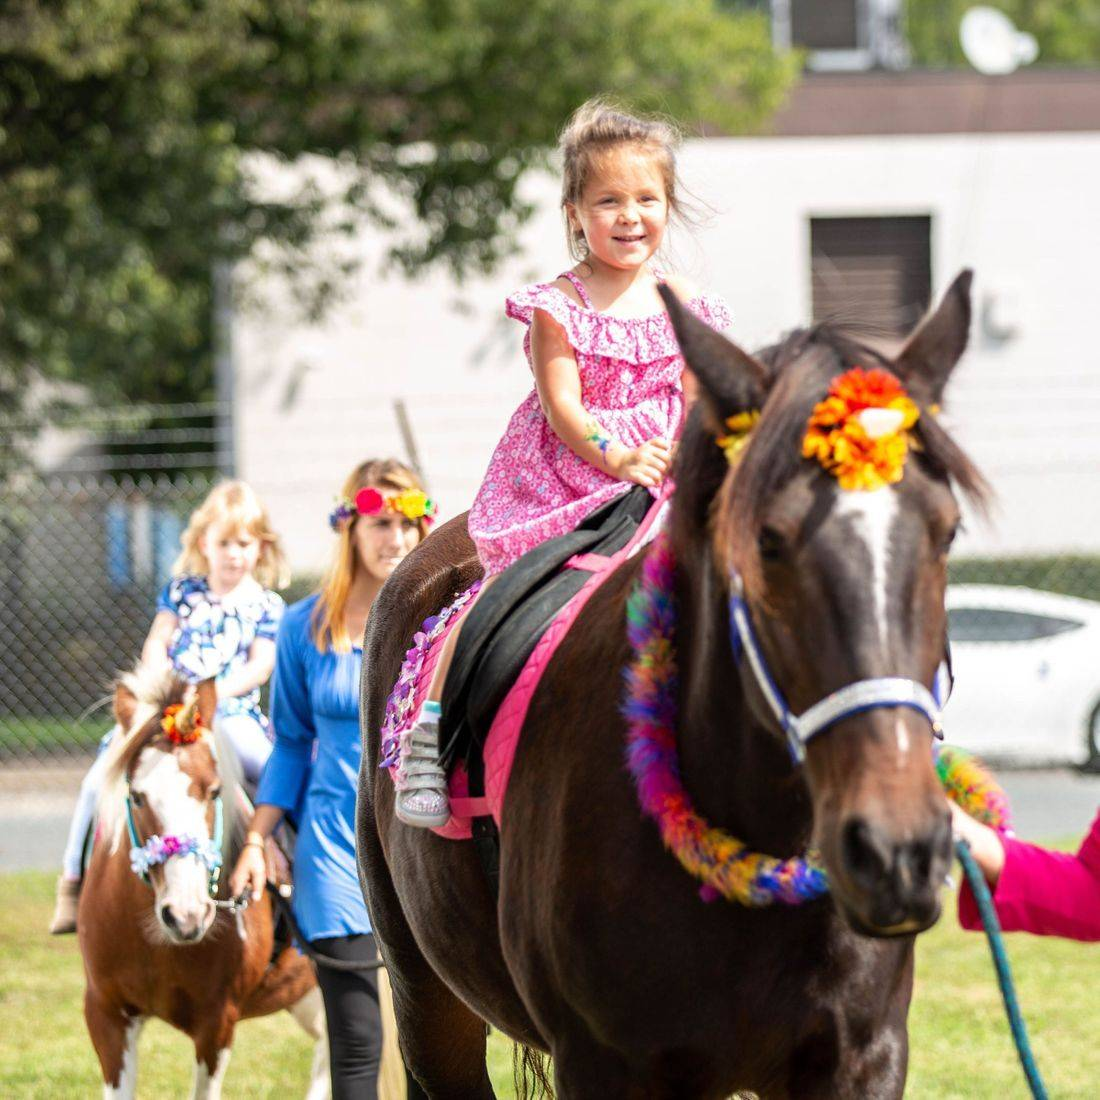 Unicorn rides, unicorn riding, horses, horse, kids, fairy festival